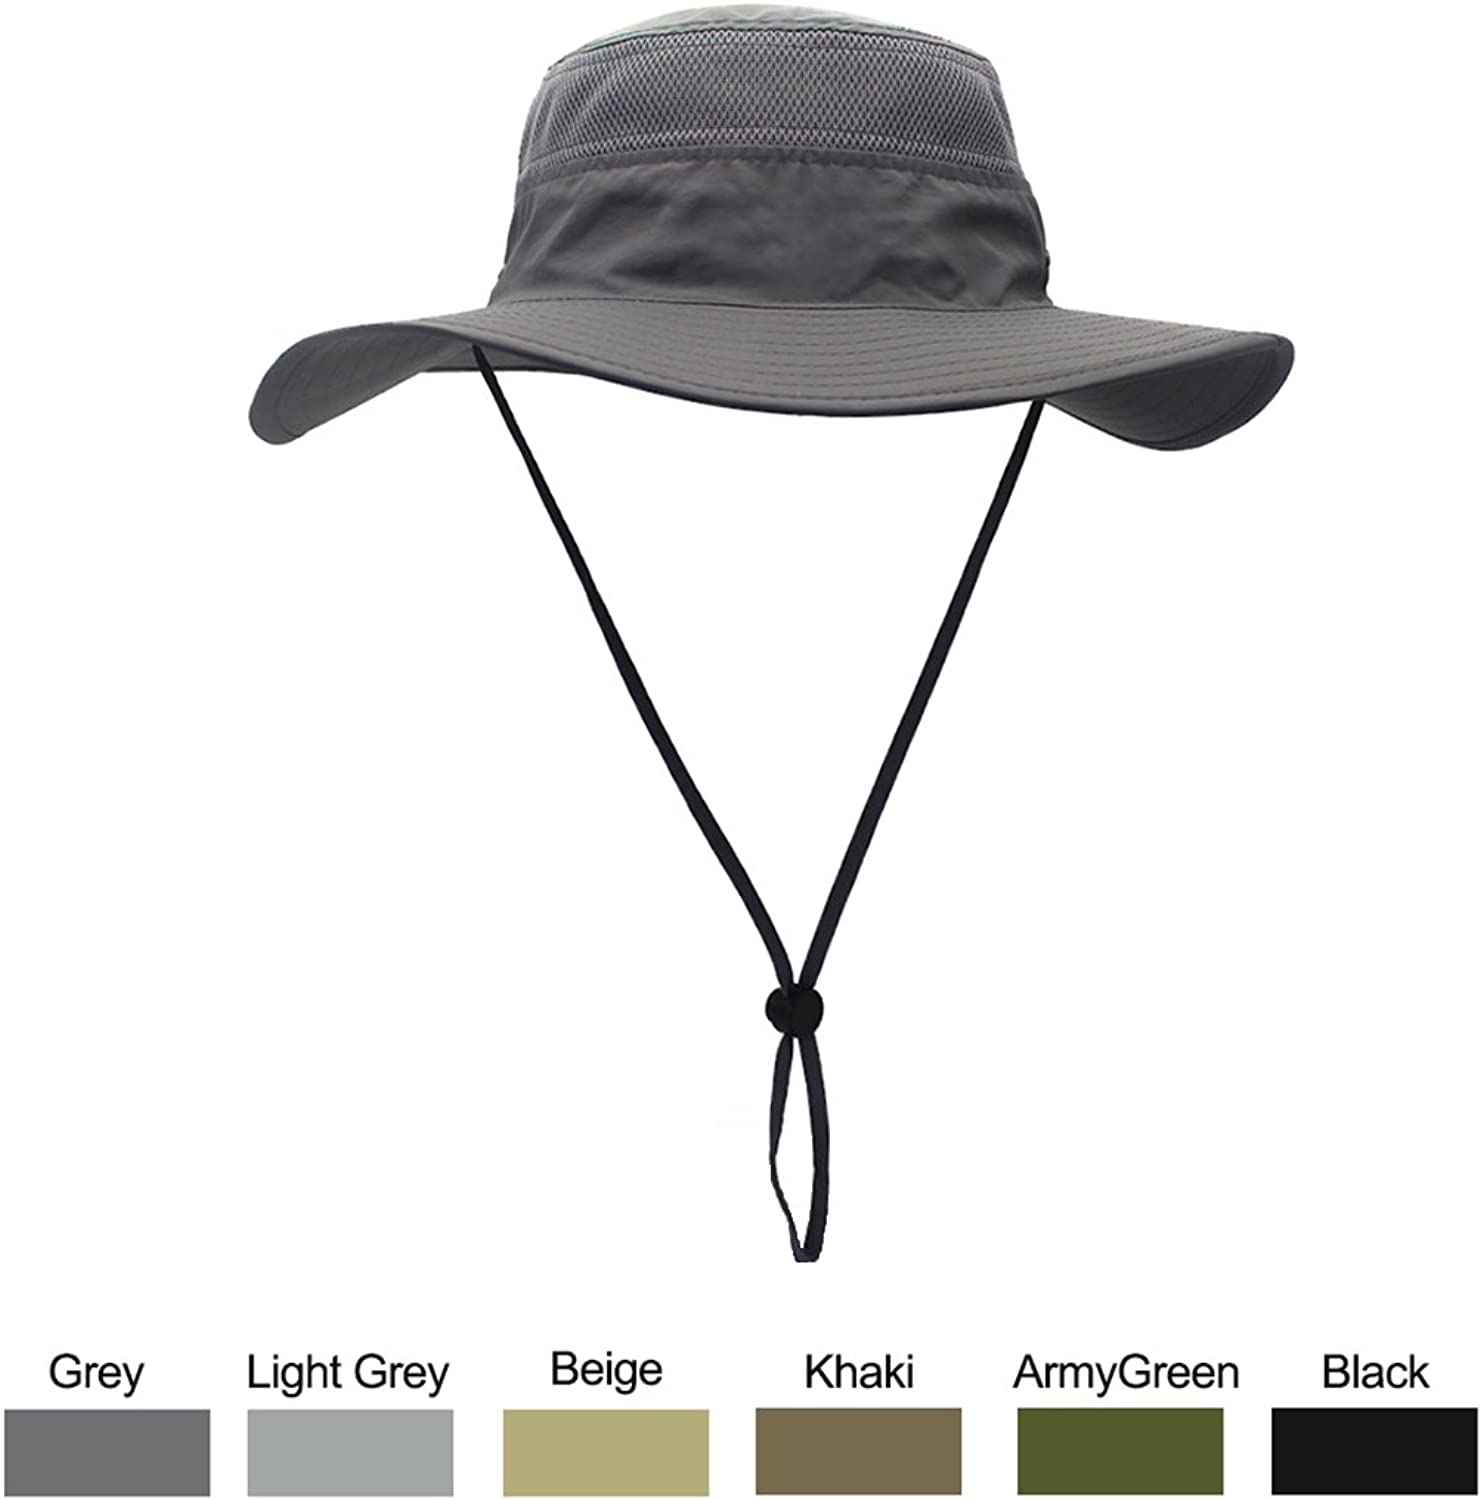 0b6e08b3 Outdoor Sun Hat,with 50+ 50+ 50+ UPF,Lightweight and Breathable Fabric,Sun  Predection Hats .Perfect Adjustable Drawstring Design for Men & Women.